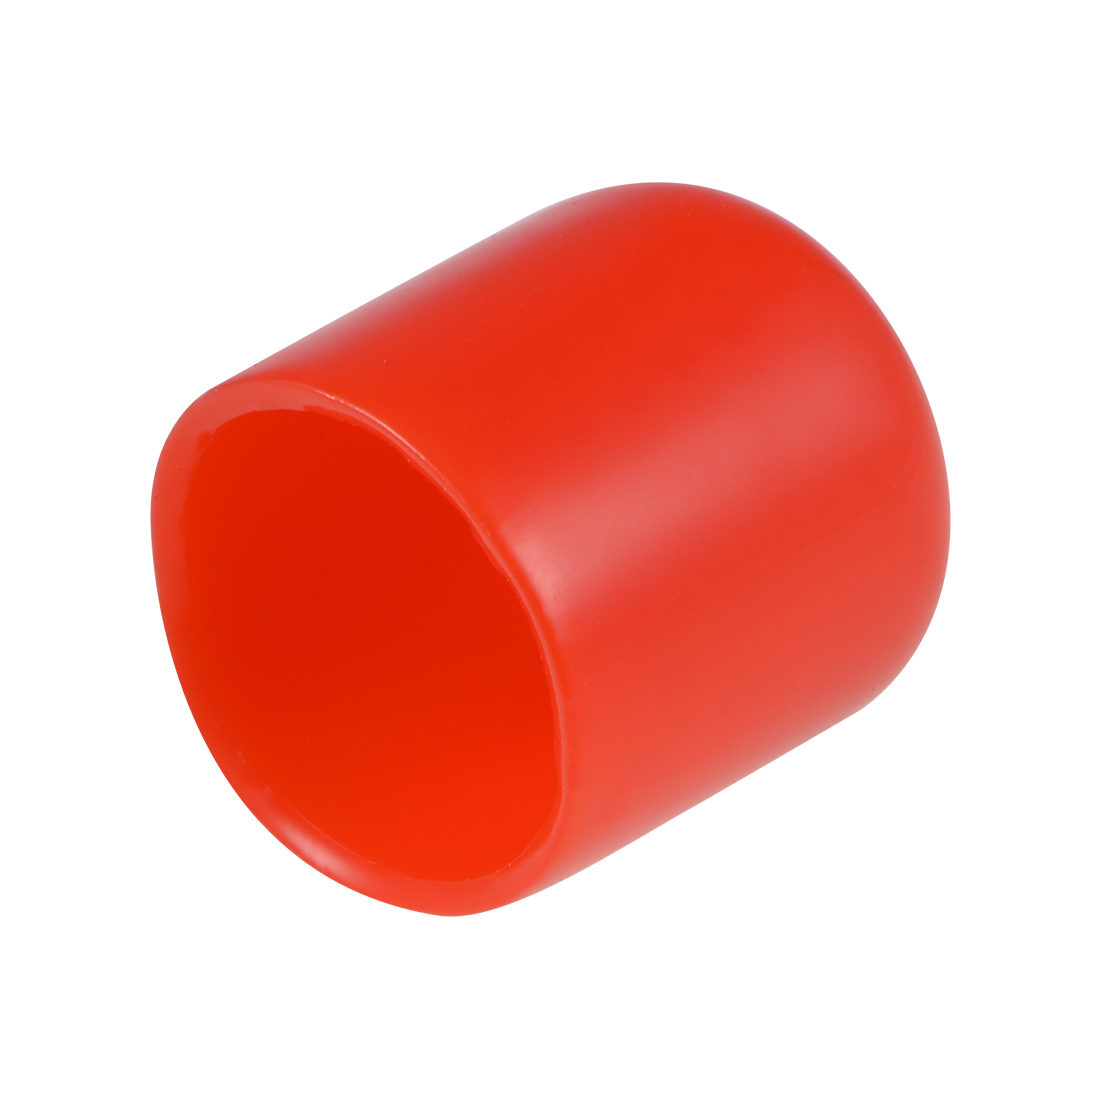 Screw Thread Protector, 15mm ID Round End Cap Cover Red Tube Caps 10pcs